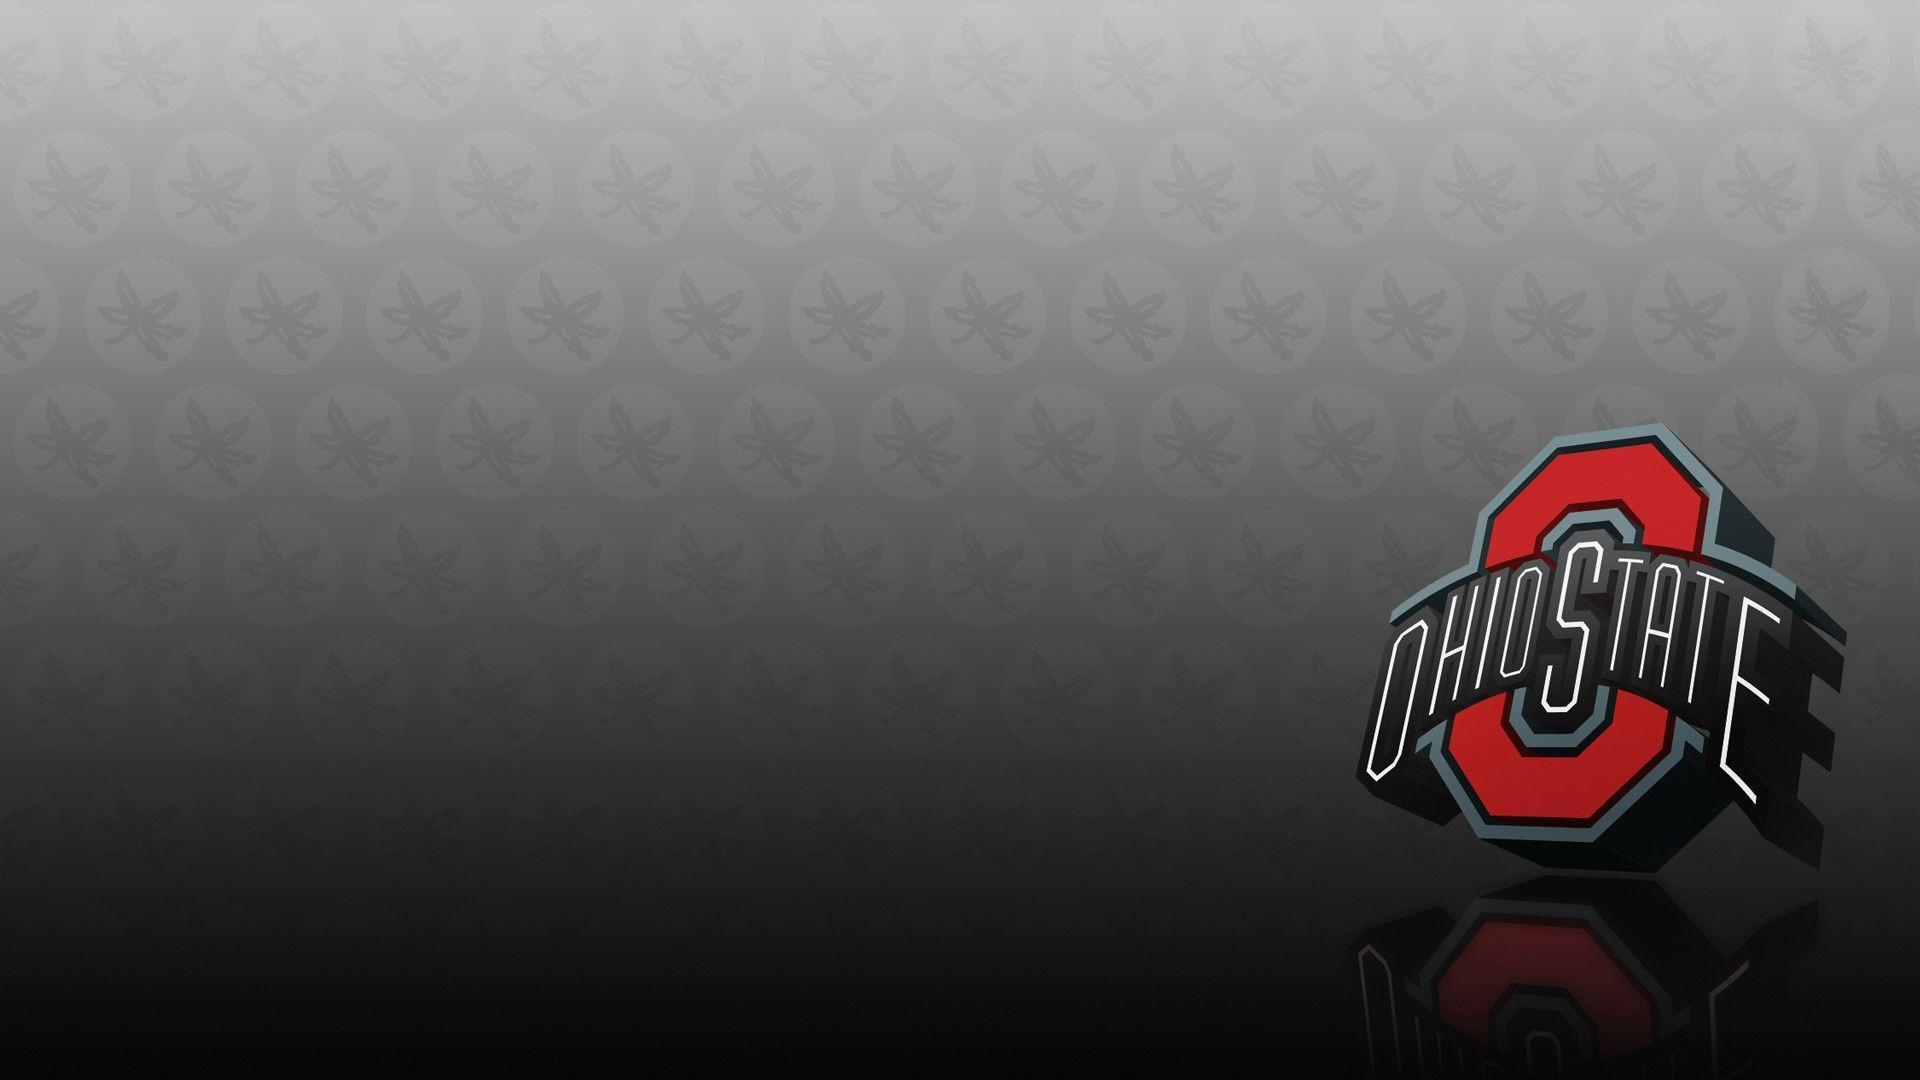 Ohio State University Wallpapers - Wallpaper Cave